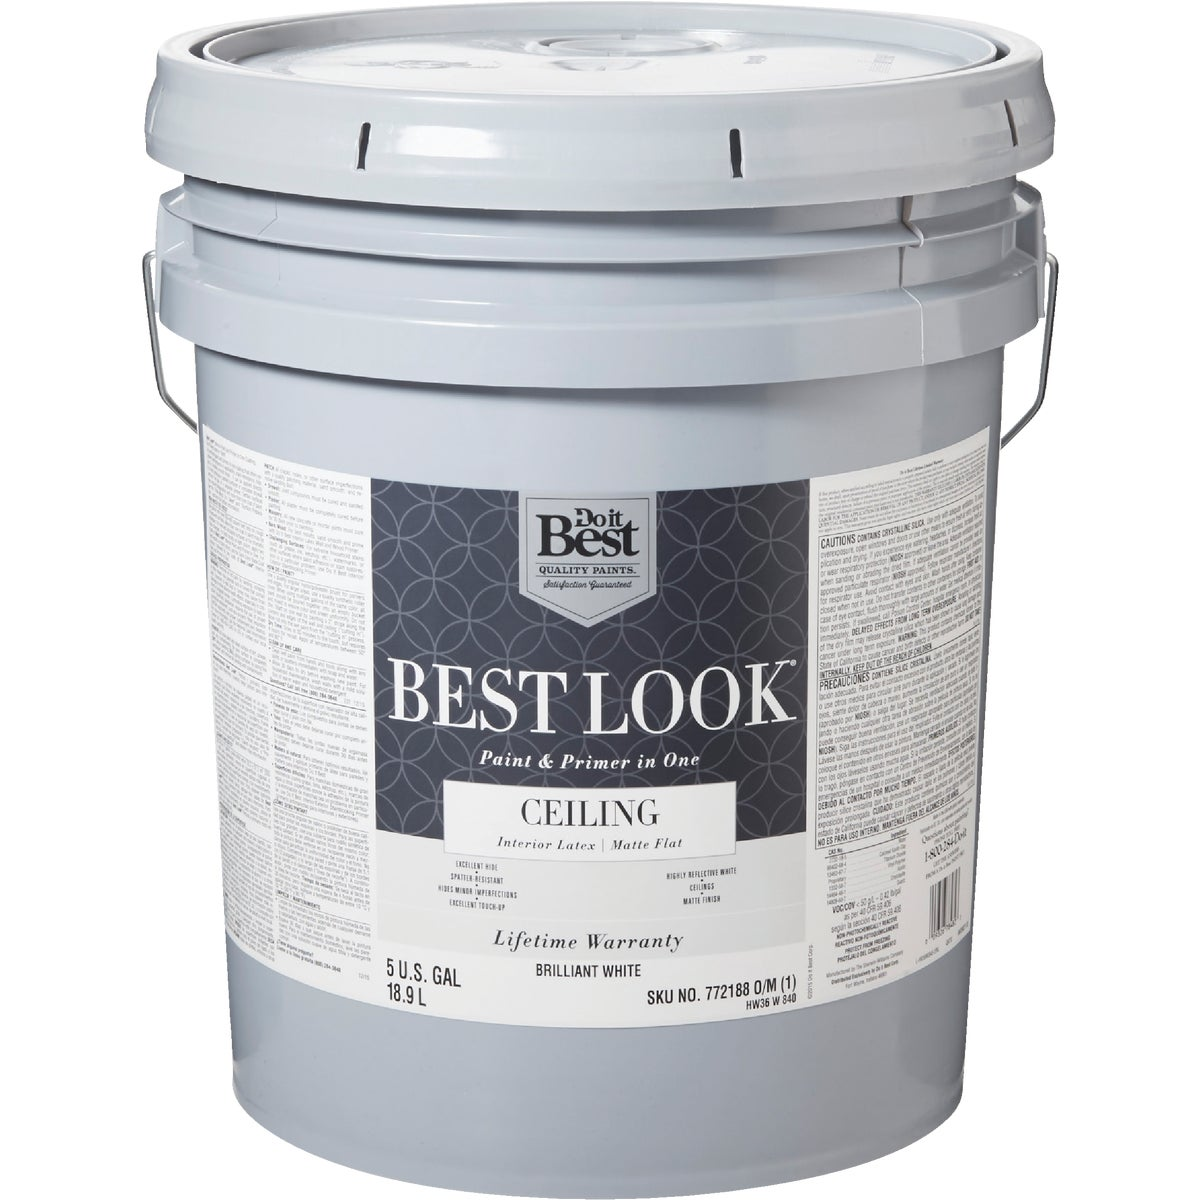 BRLNT WHT CEILING PAINT - HW36W0840-20 by Do it Best